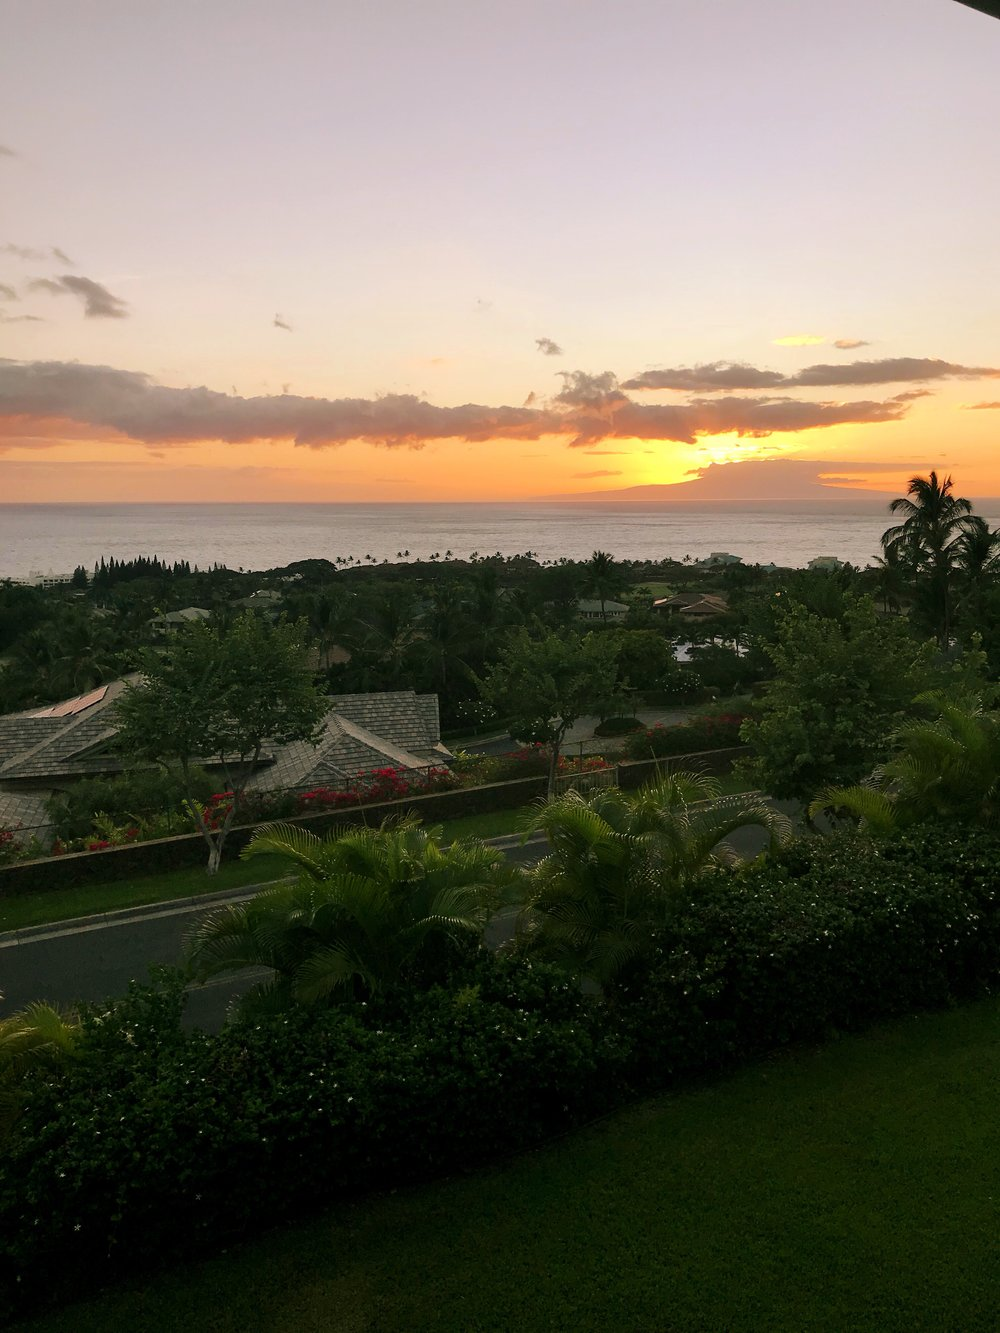 The view from our balcony (called a Lanai in Hawaii)